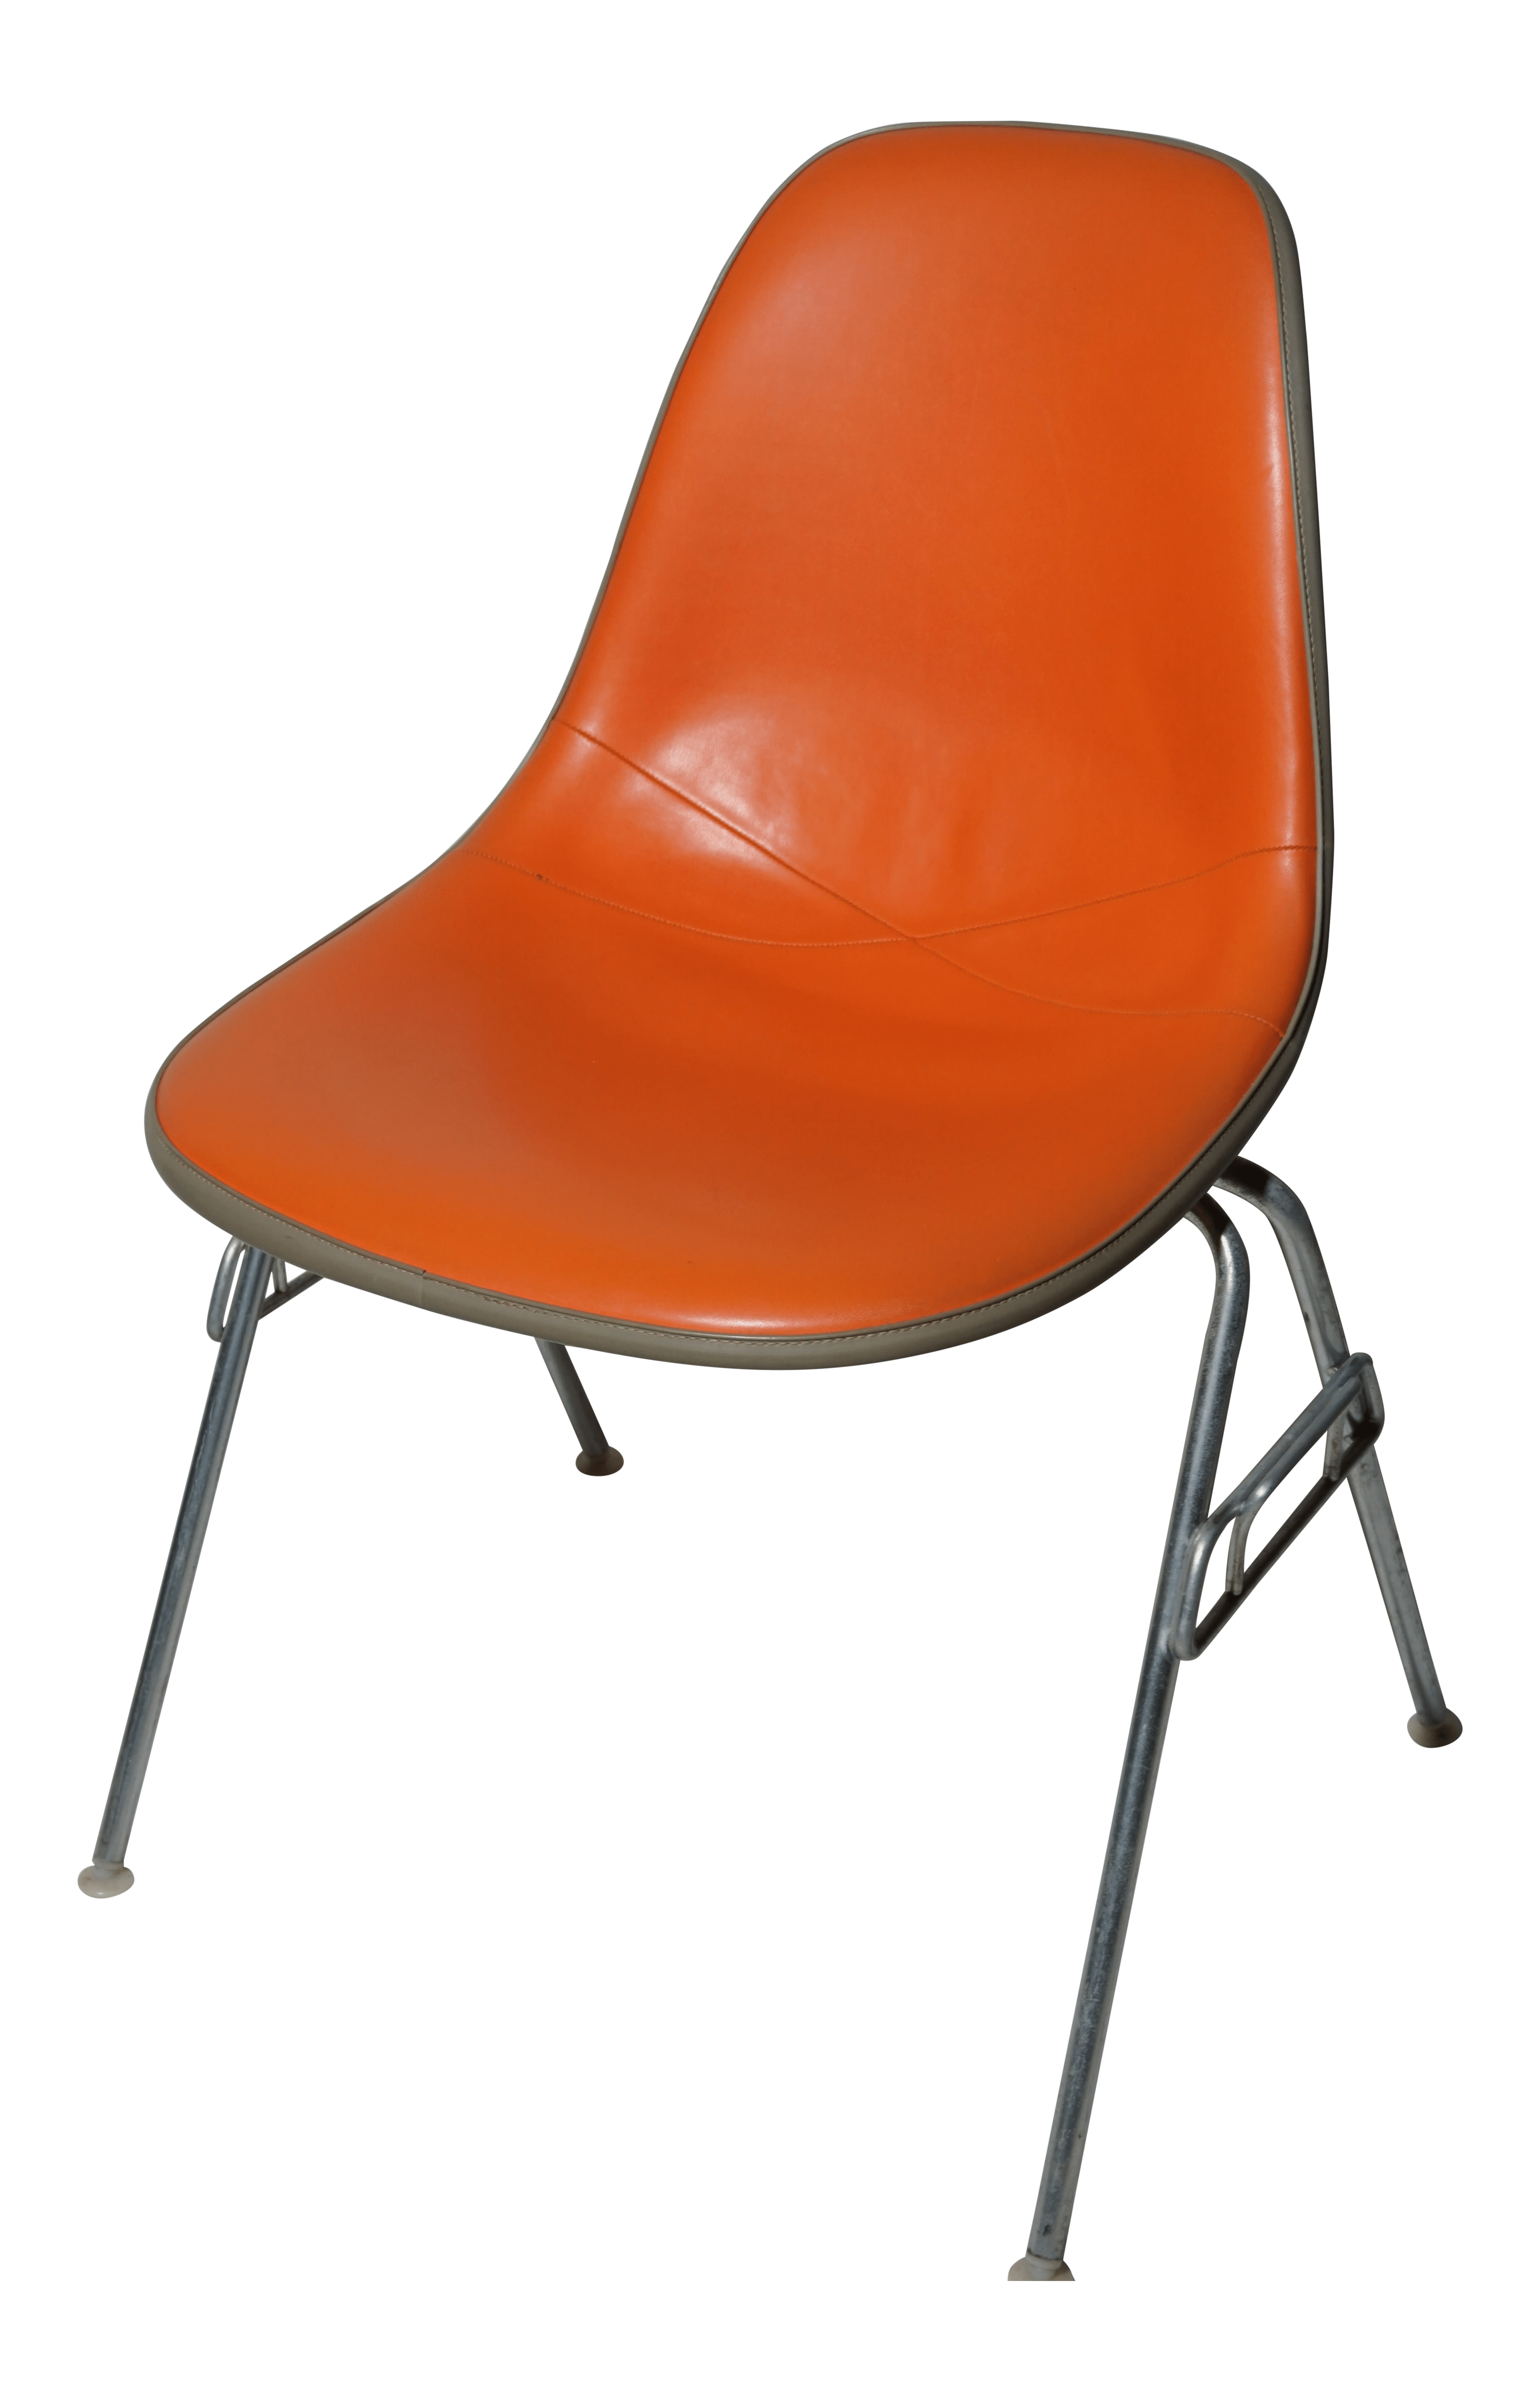 herman miller chairs vintage posture pad for chair eames dss orange chairish